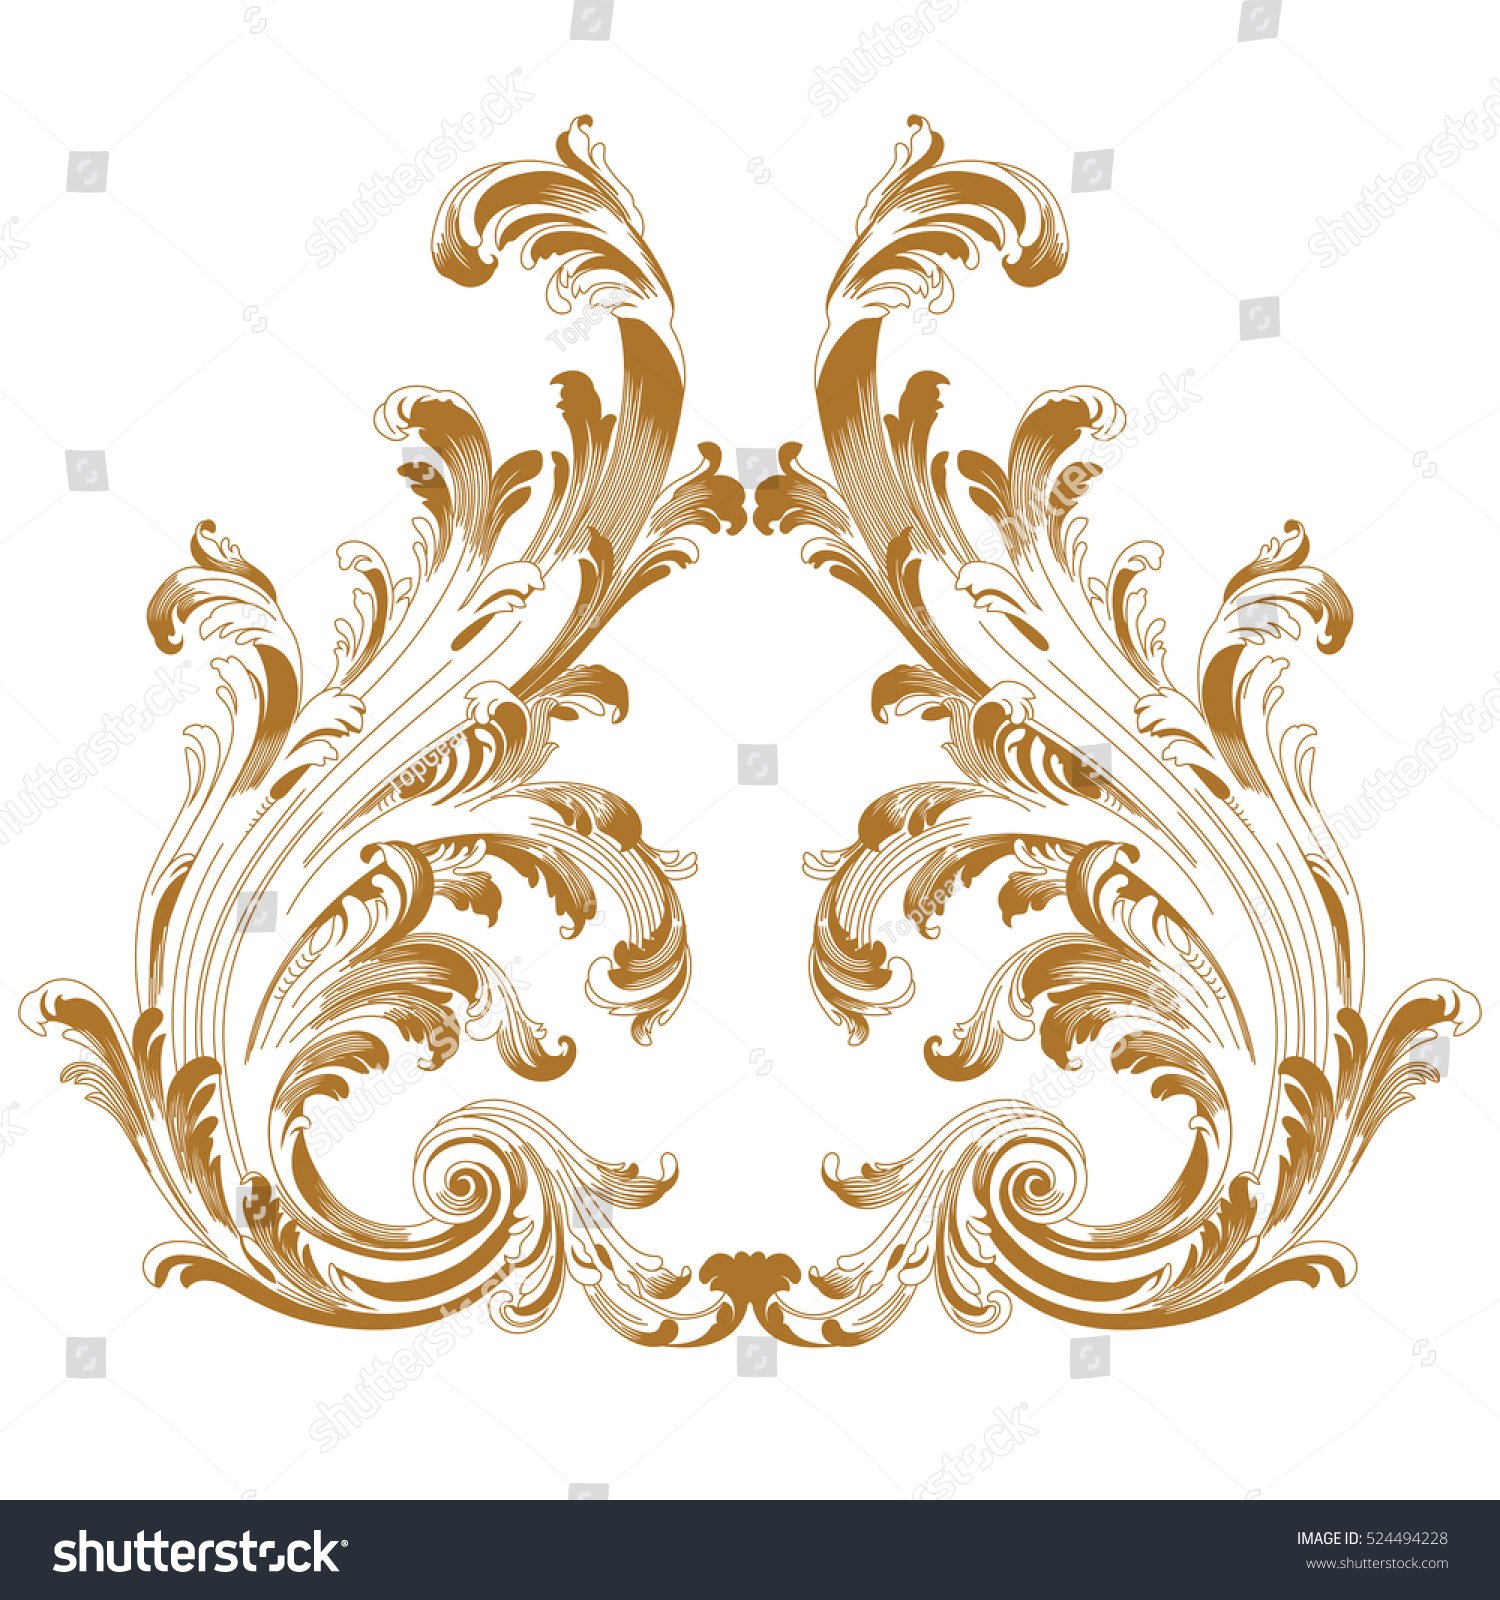 Golden Vintage Baroque Ornament Corner Retro Stock Vector